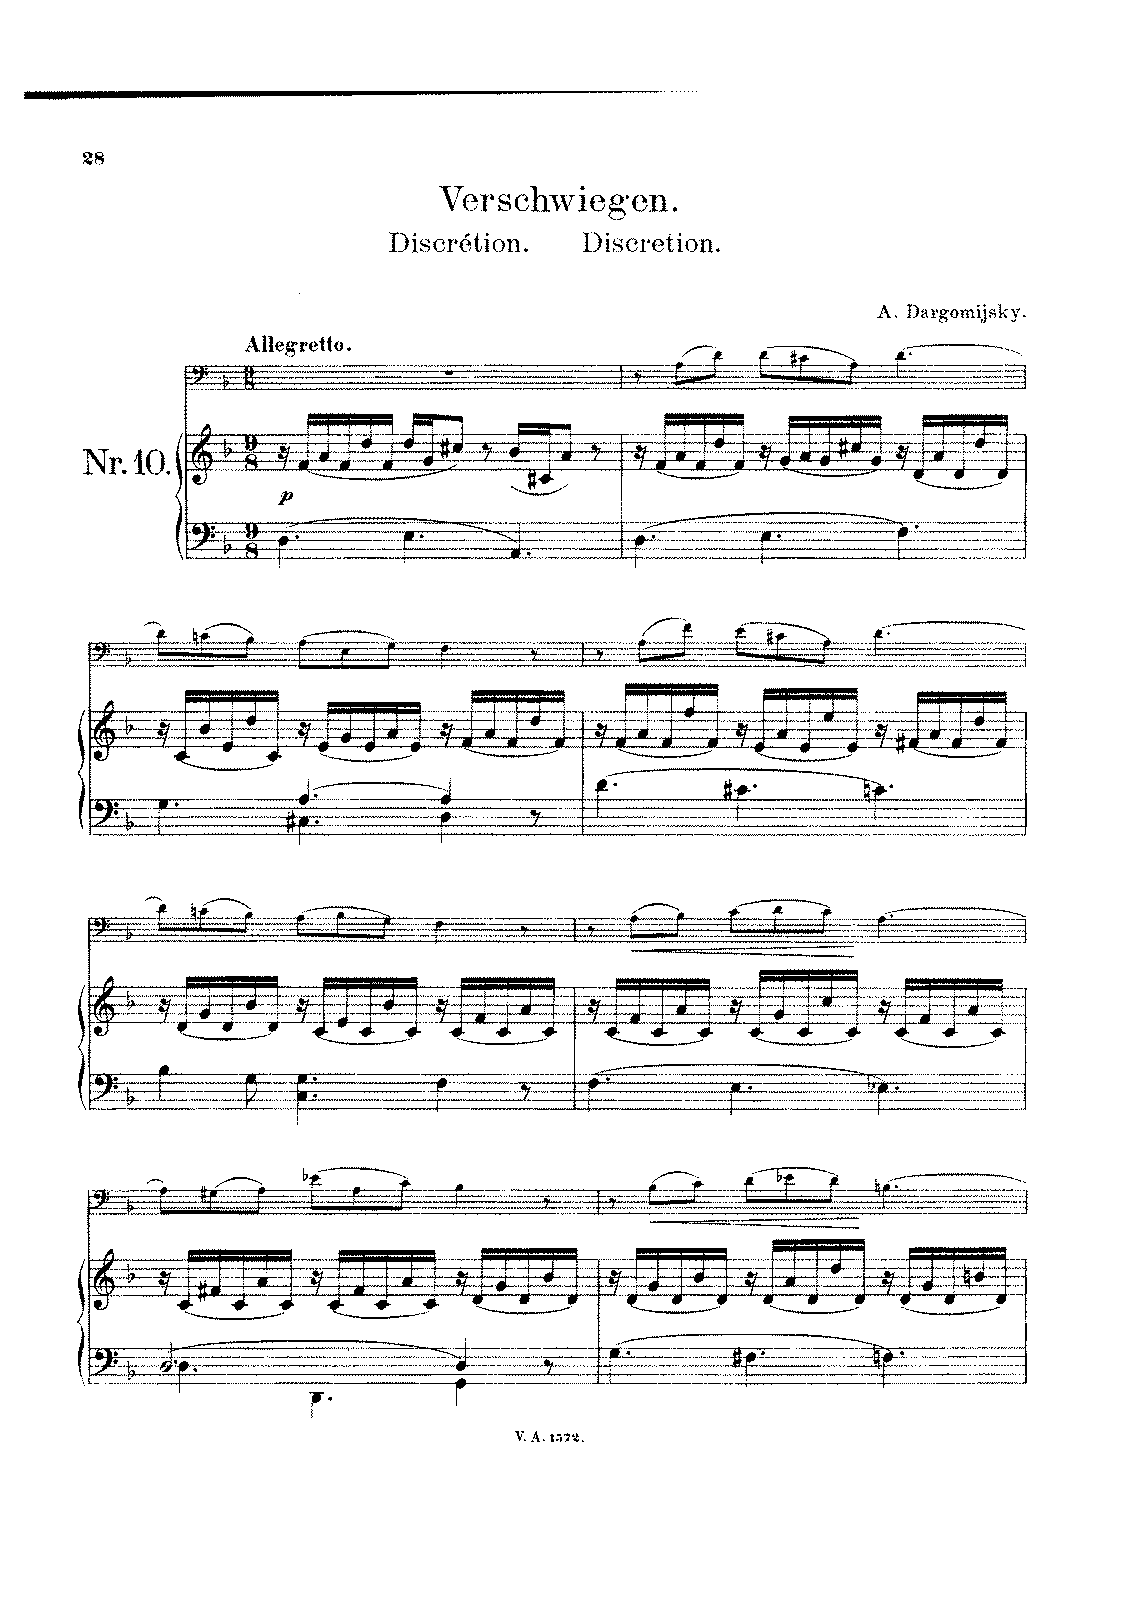 PMLP60513-Dargomijsky - Discretion (Salter) for Cello and Piano score.pdf